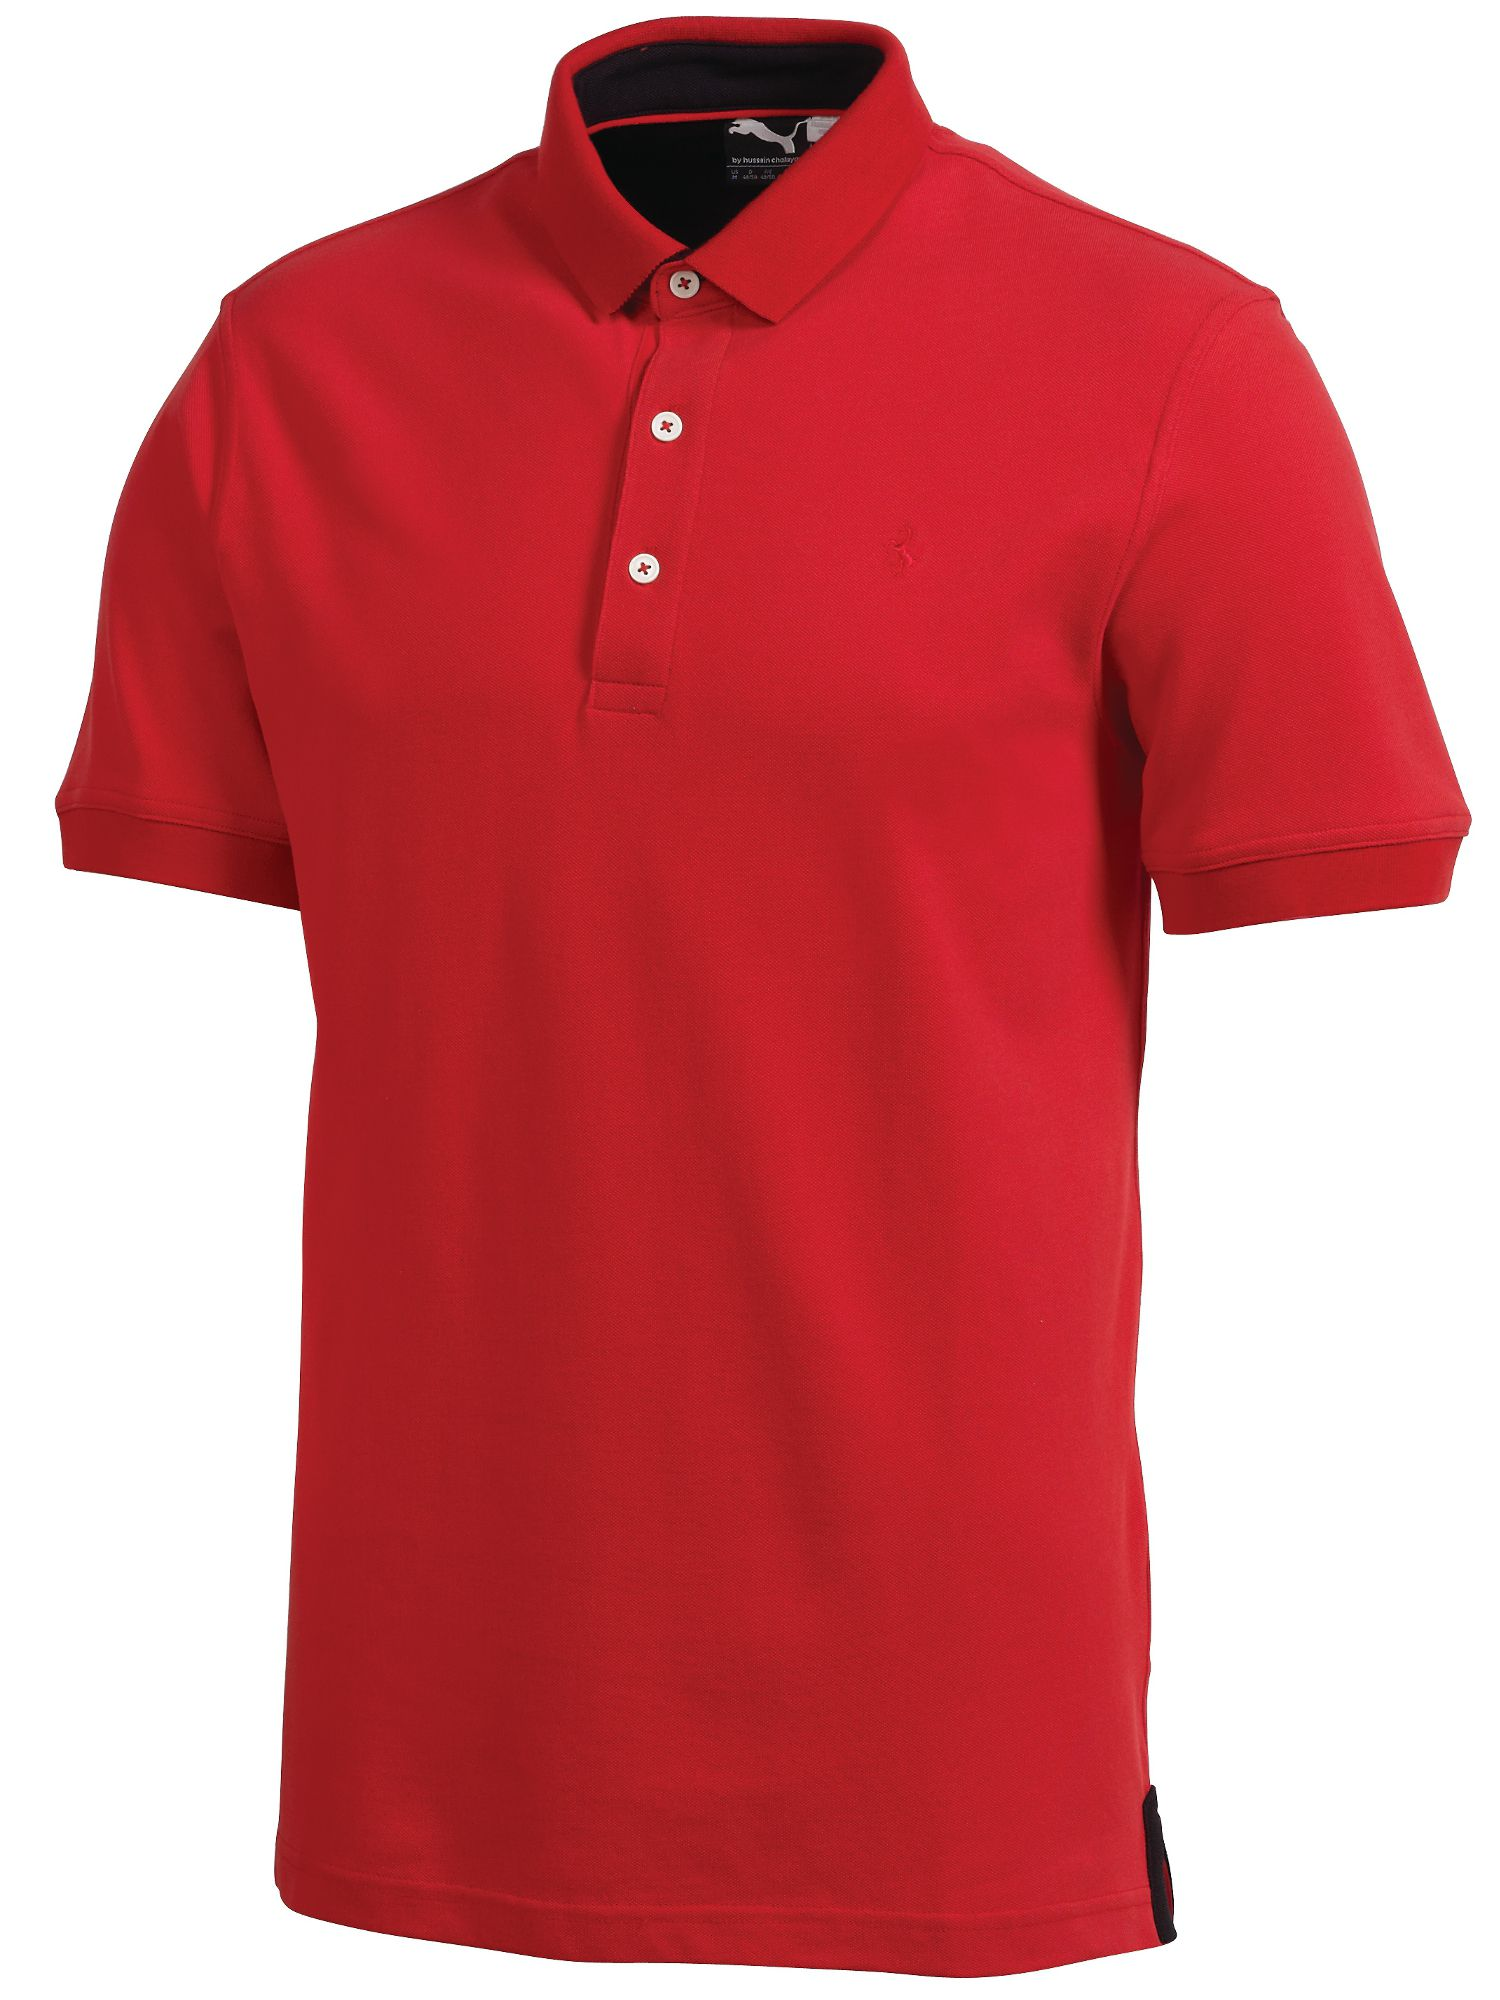 Ferrari stretch pique polo